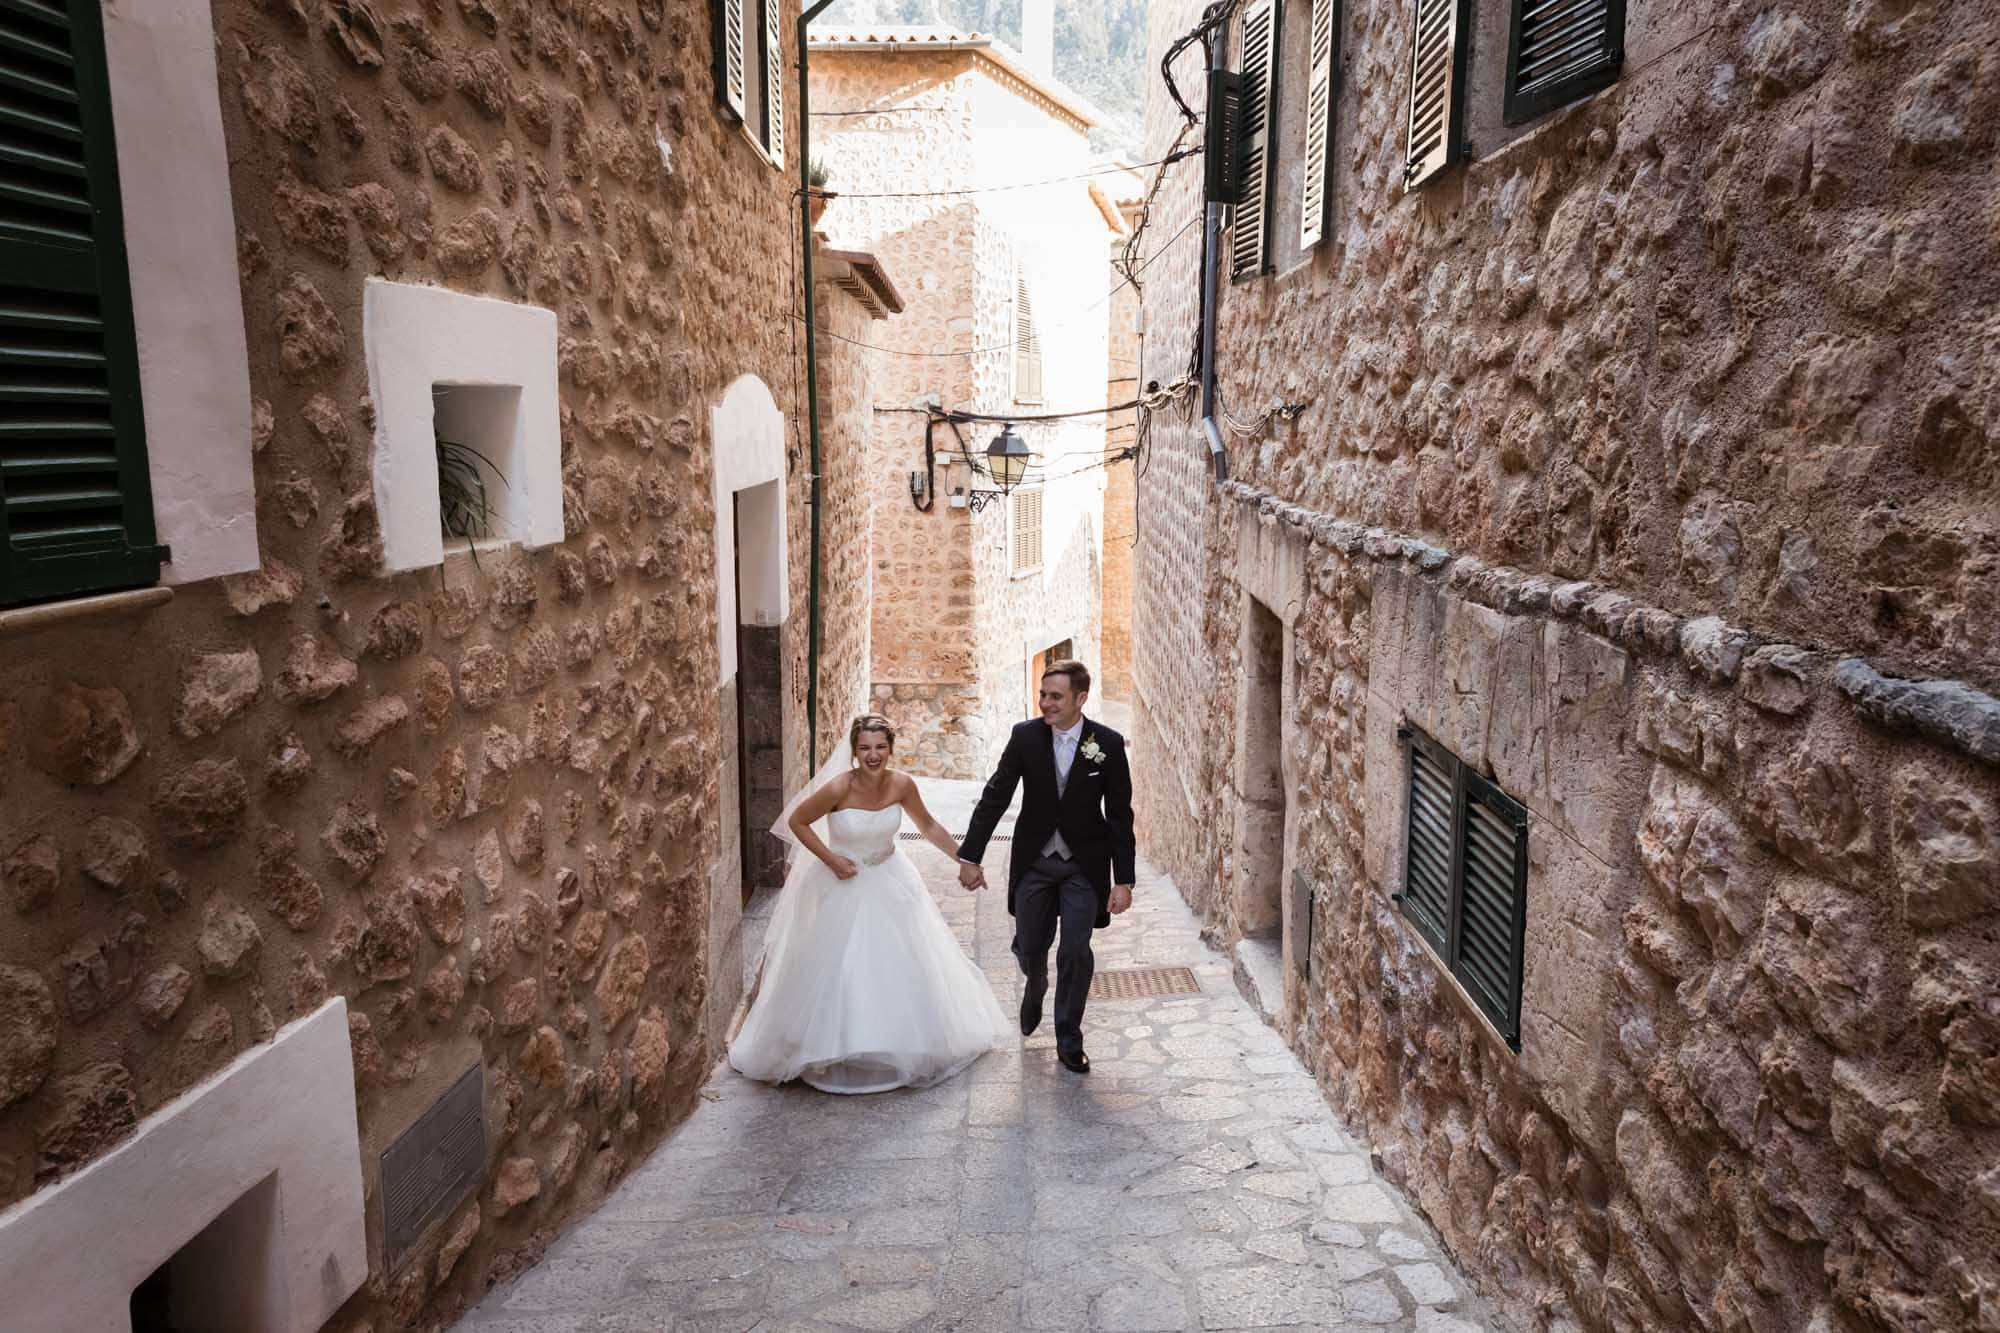 Mallorca wedding at Can Vedera in Fornalutx by Mallorca wedding photographer Graham Warrellow